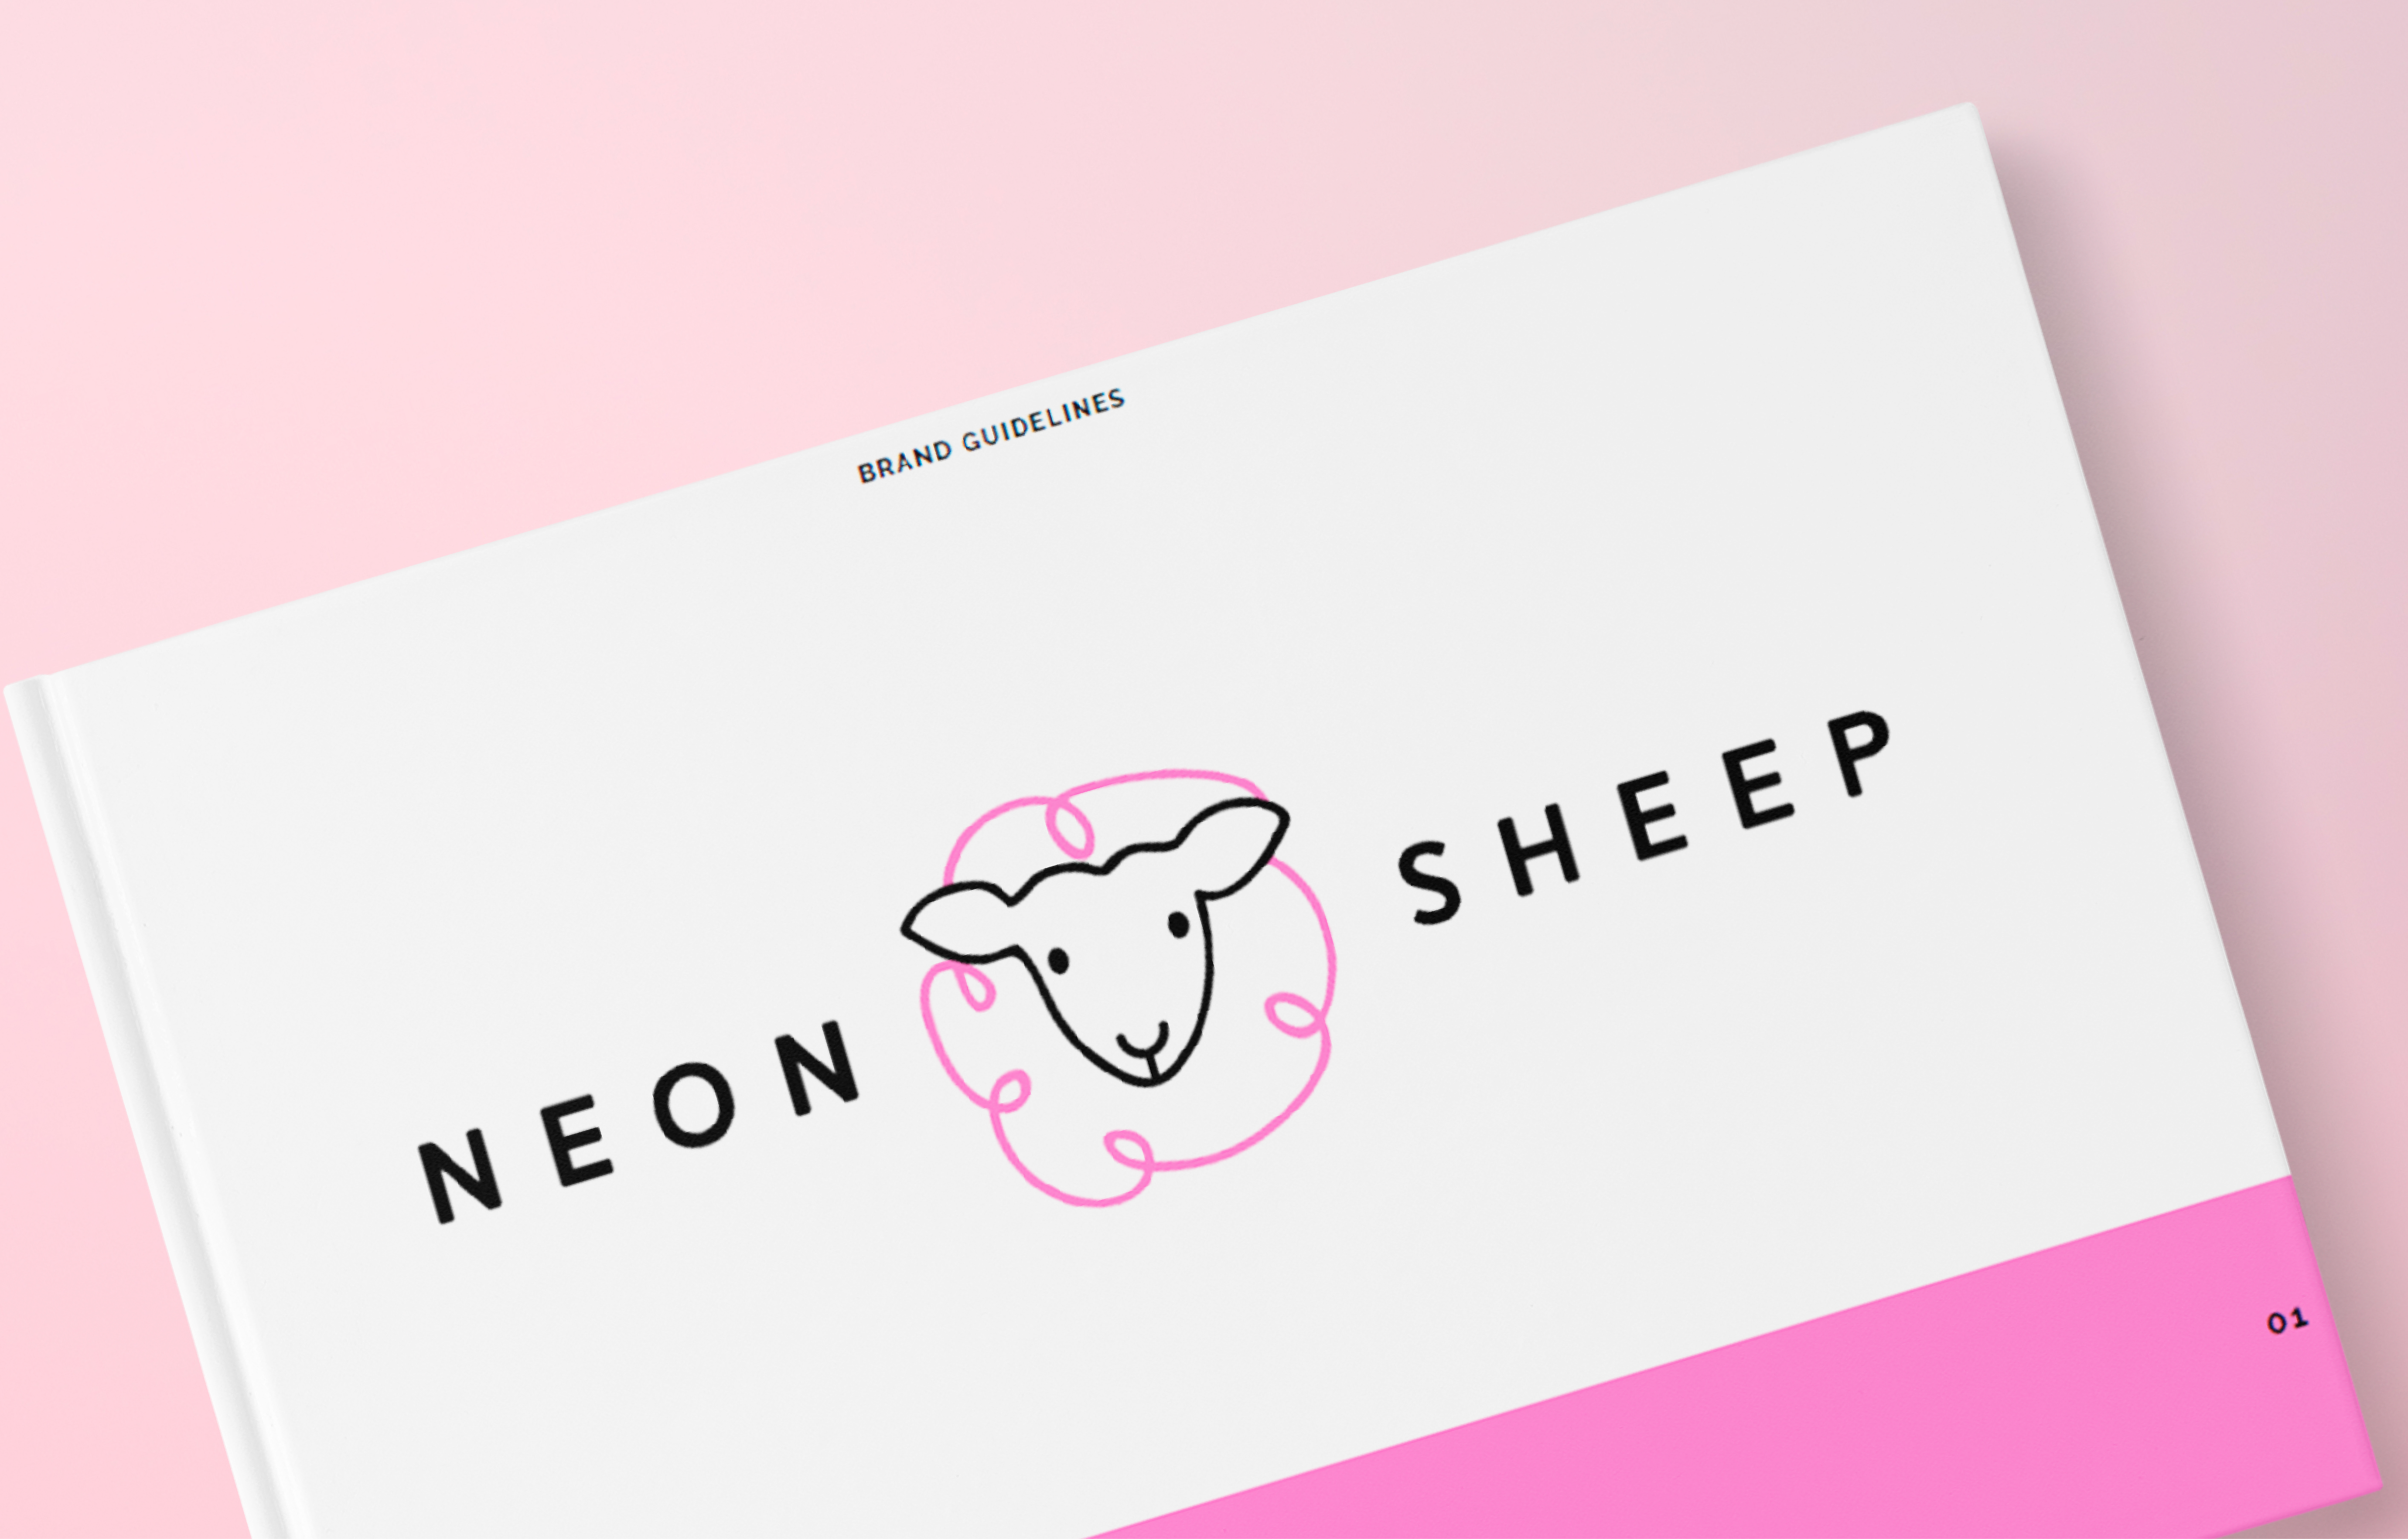 Neon Sheep Brand guidelines cover